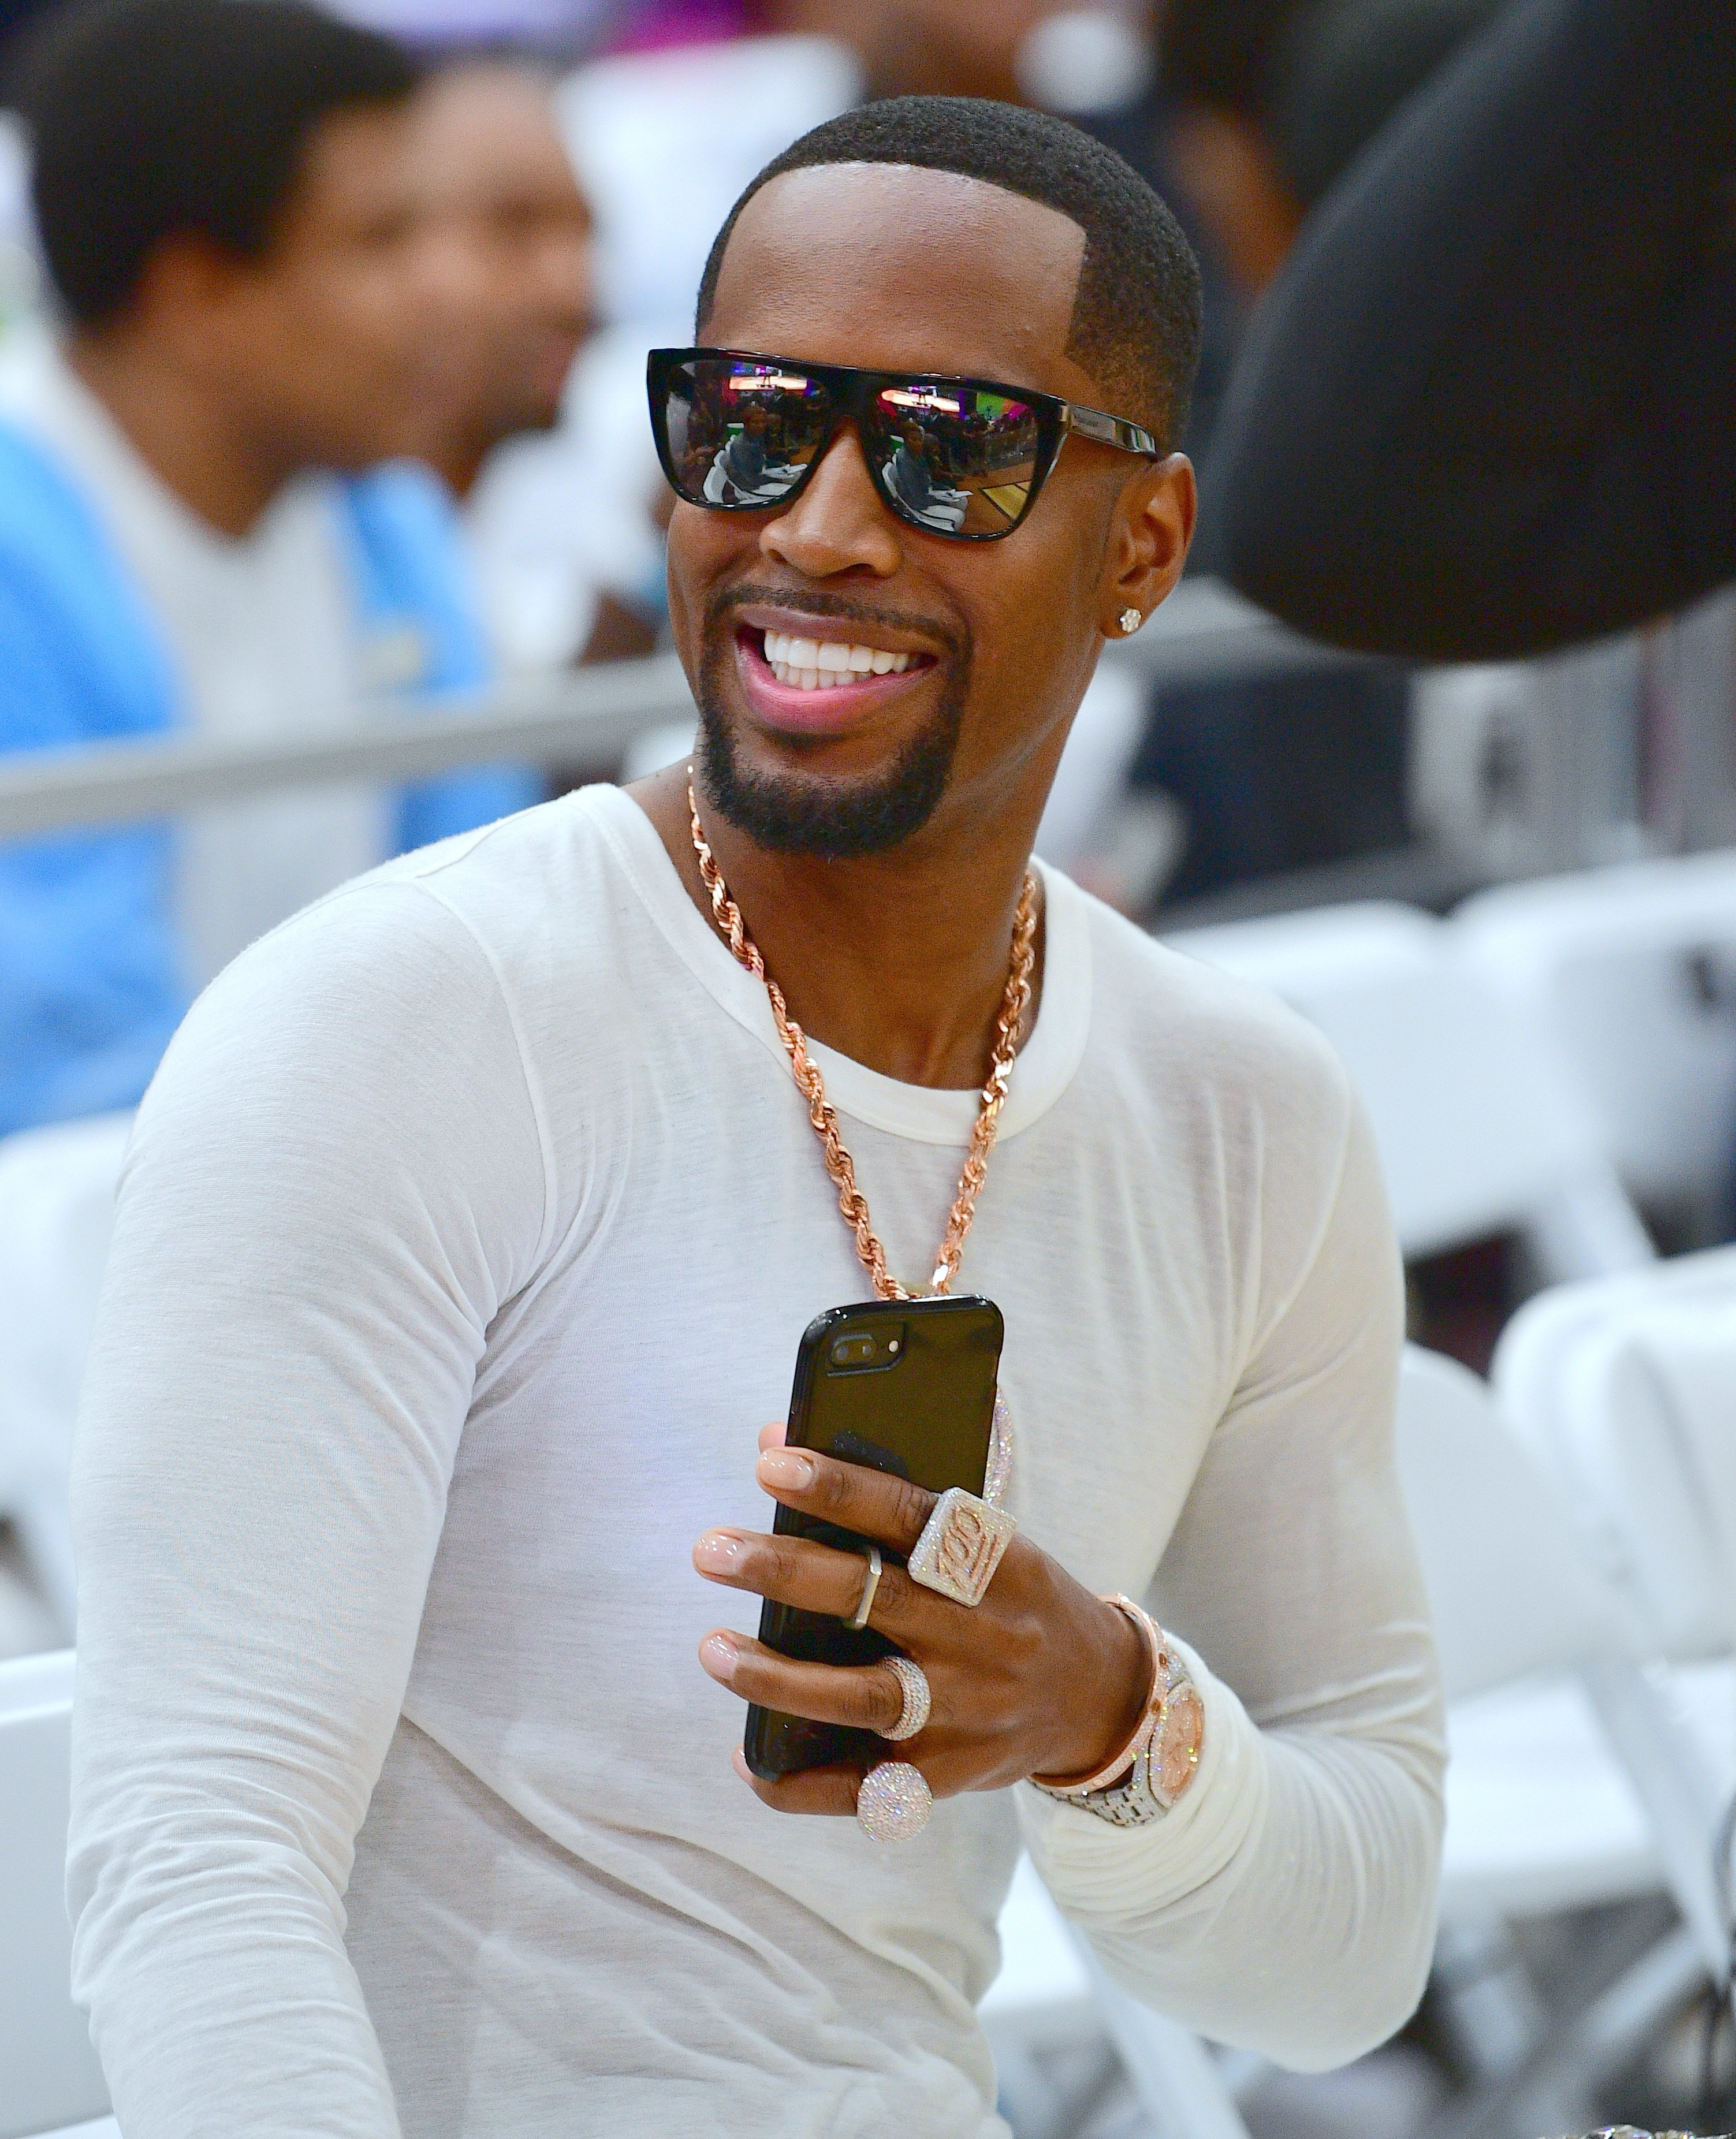 Safaree Samuels at the 2018 BET Experience at the Los Angeles Convention Center on June 23, 2018 in Los Angeles, California.| Source: Getty Images